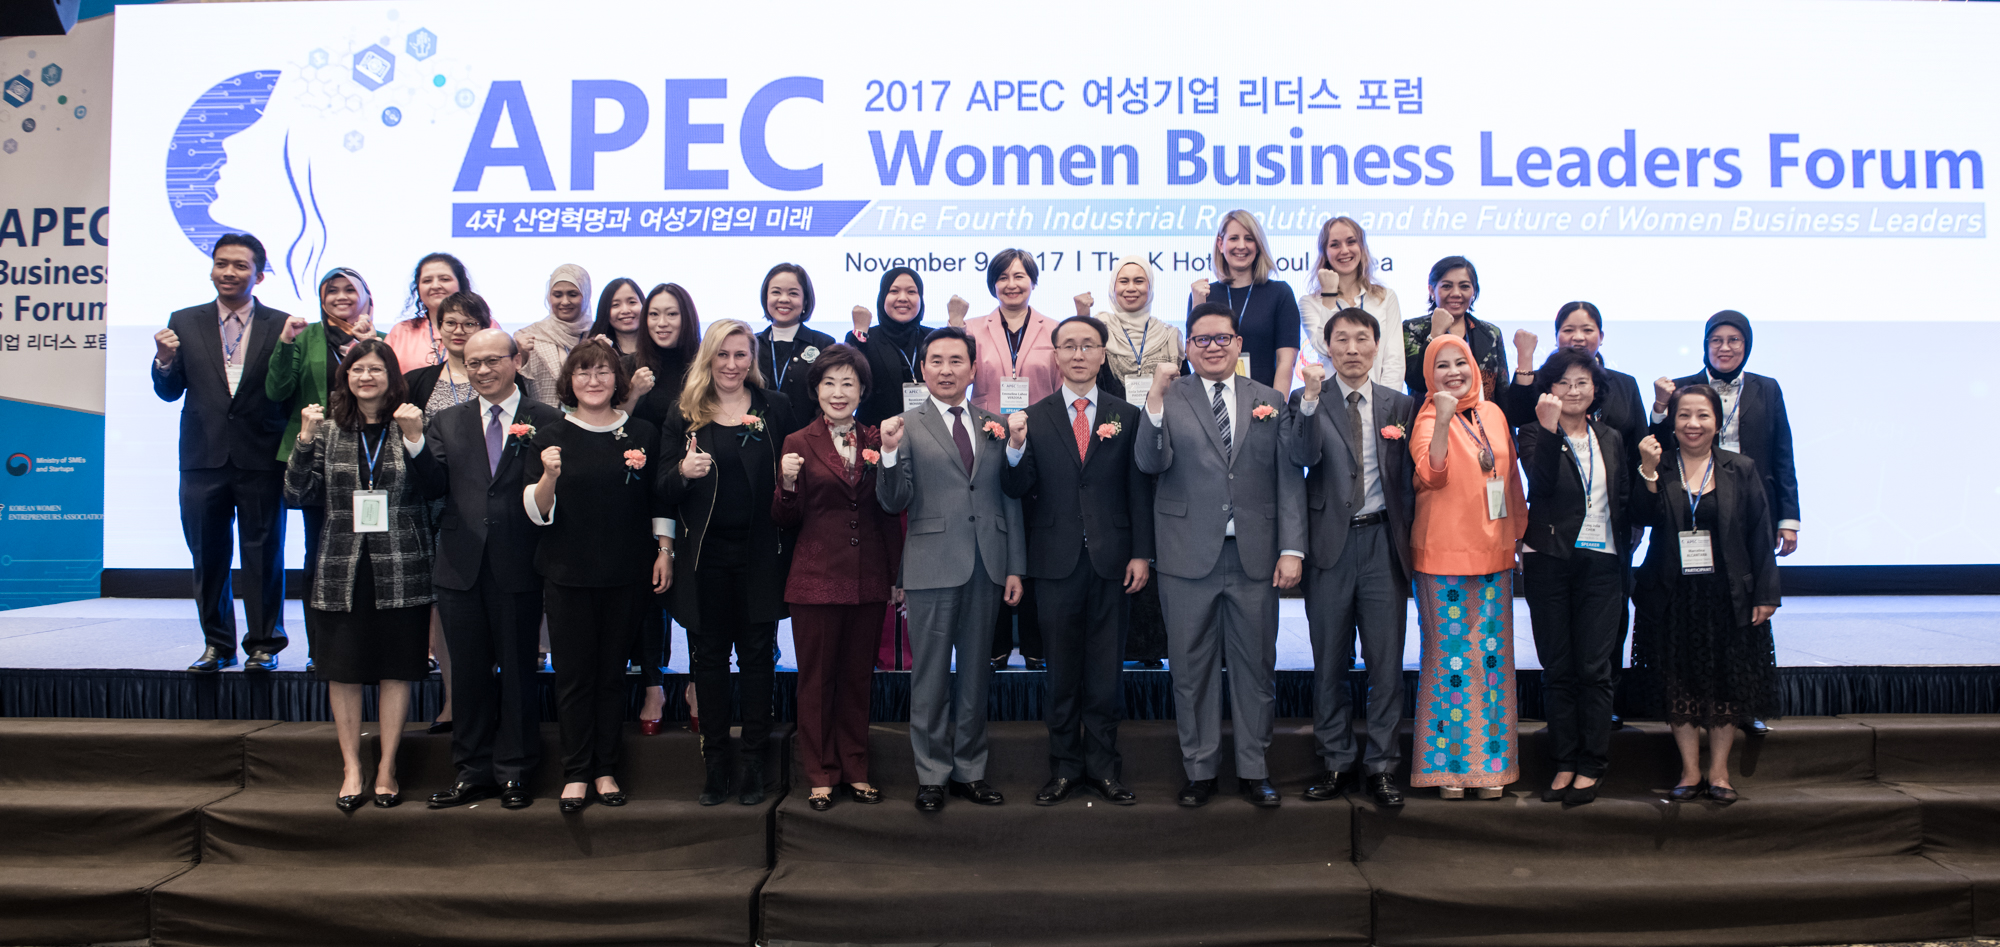 2017 APEC Women Business Leaders Forum